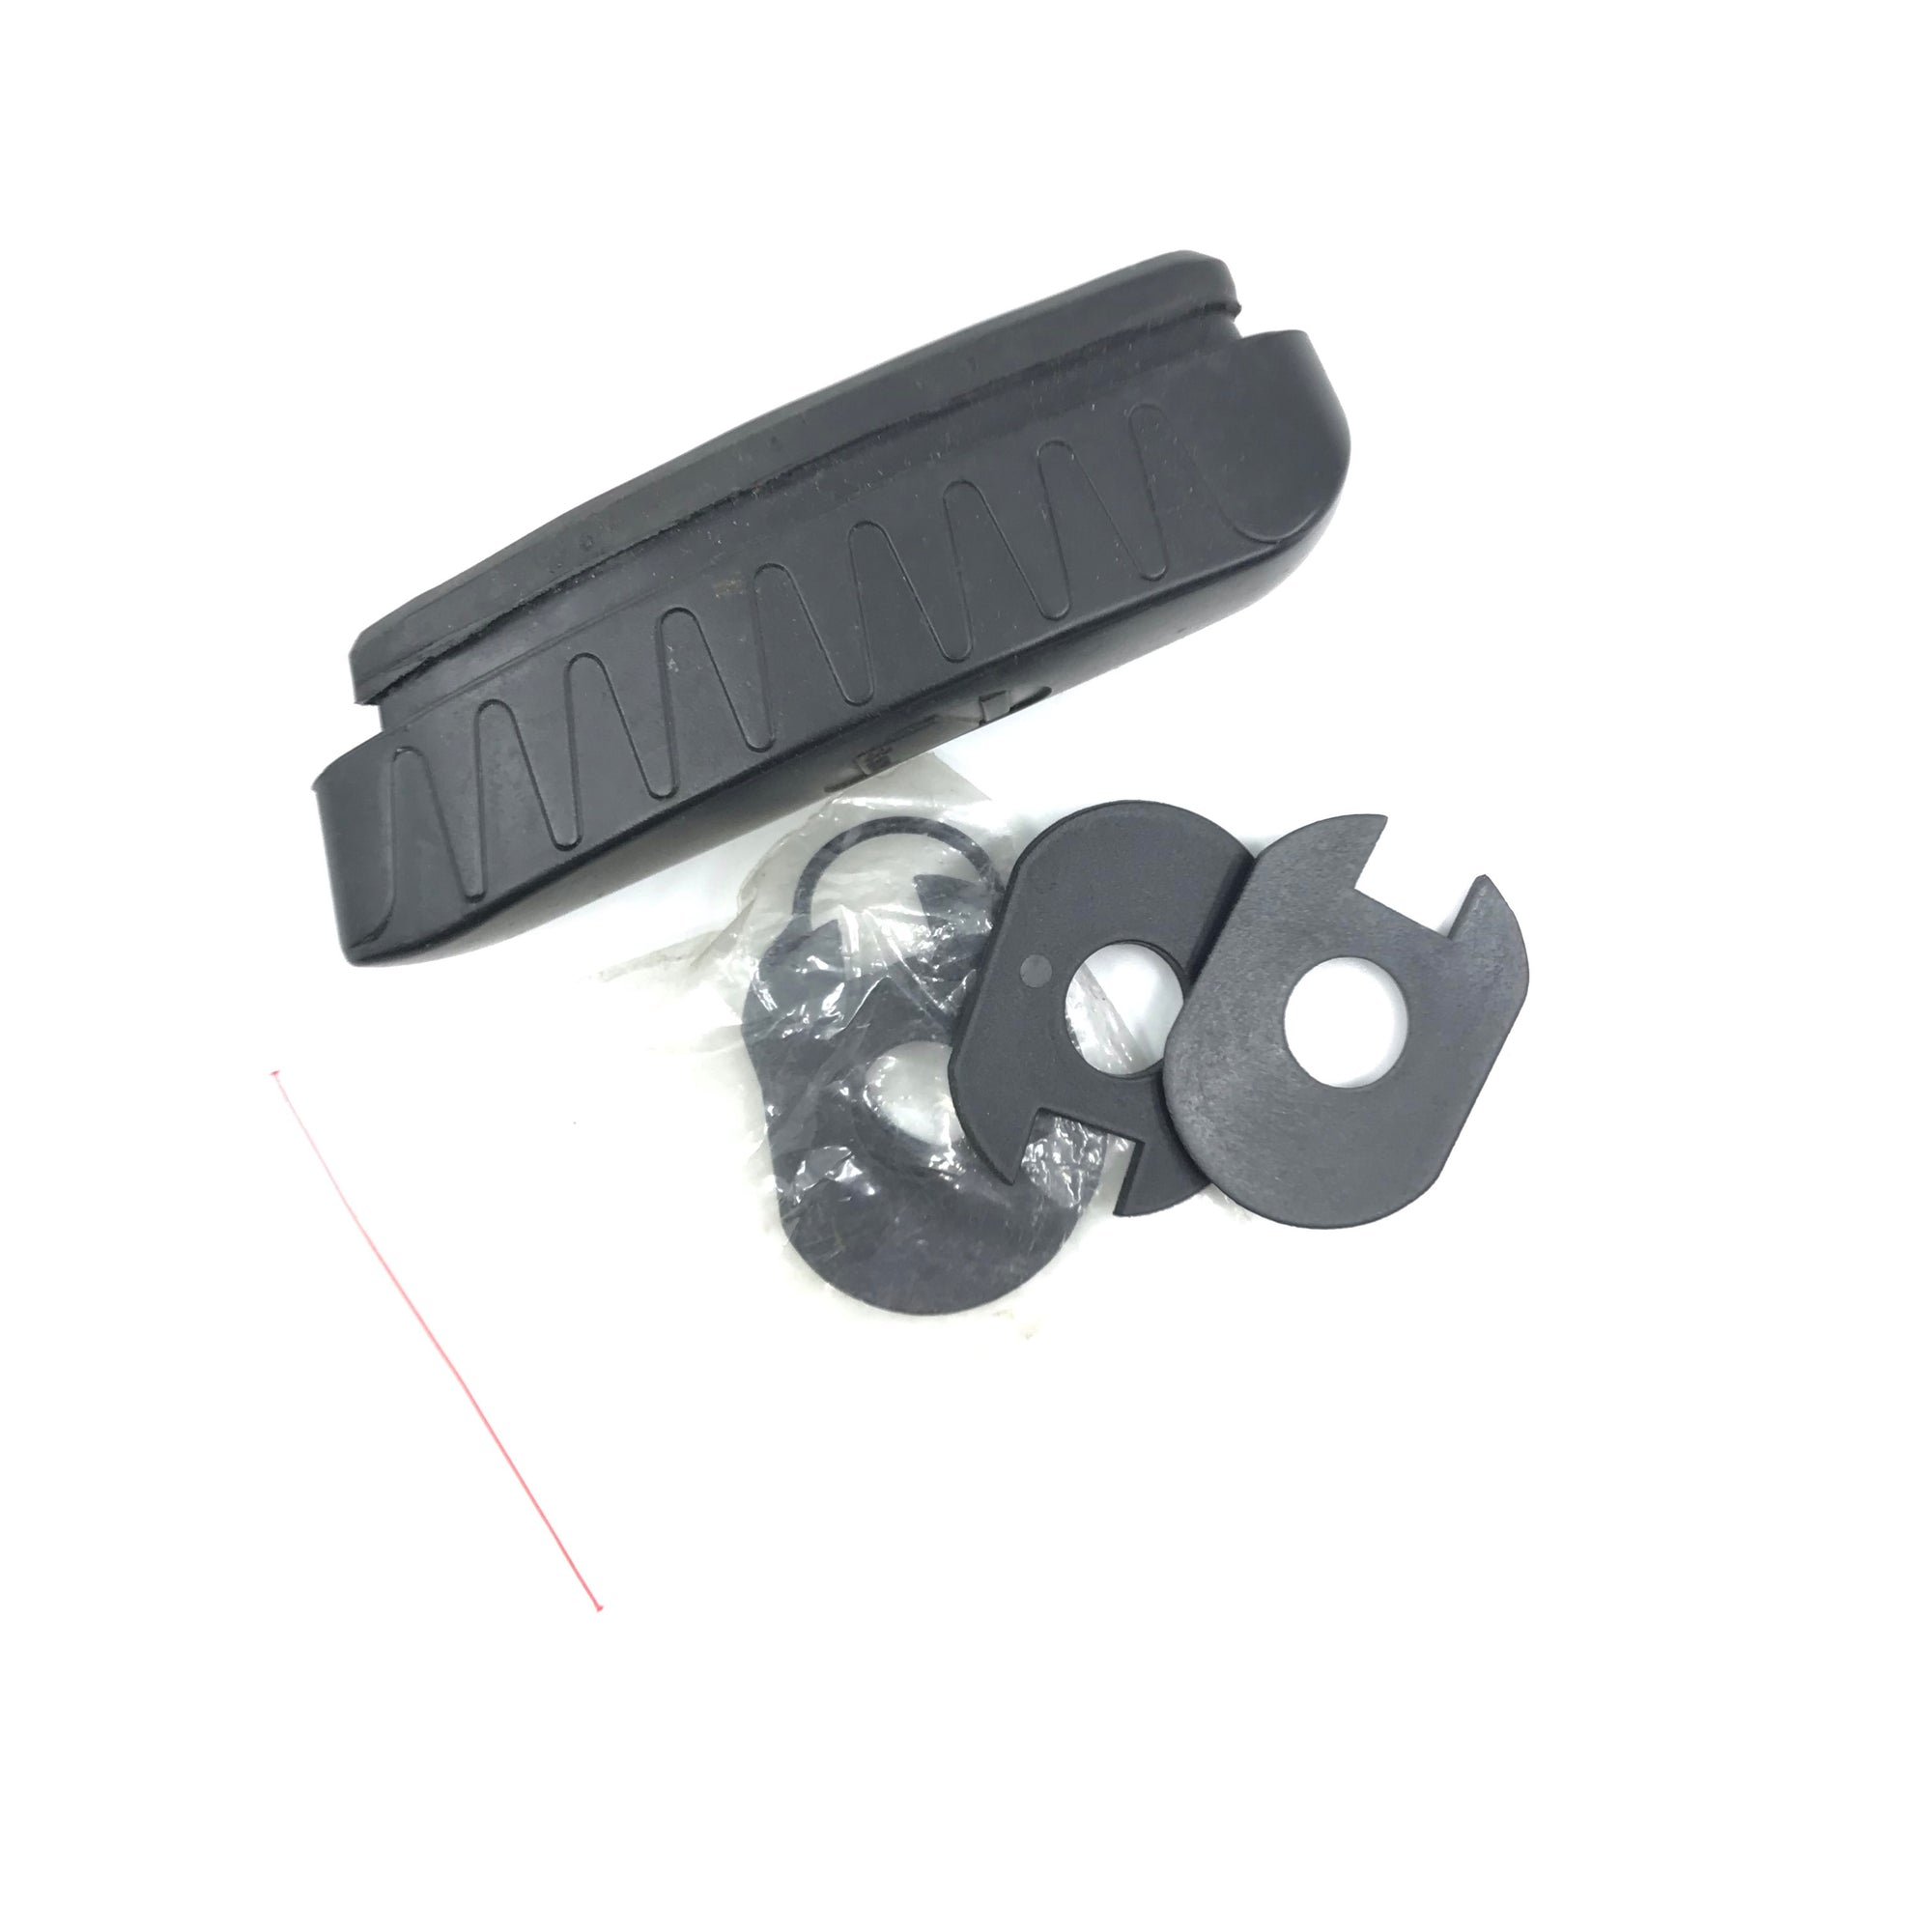 Benelli Nova Recoil Pad and Stock Angle Inserts